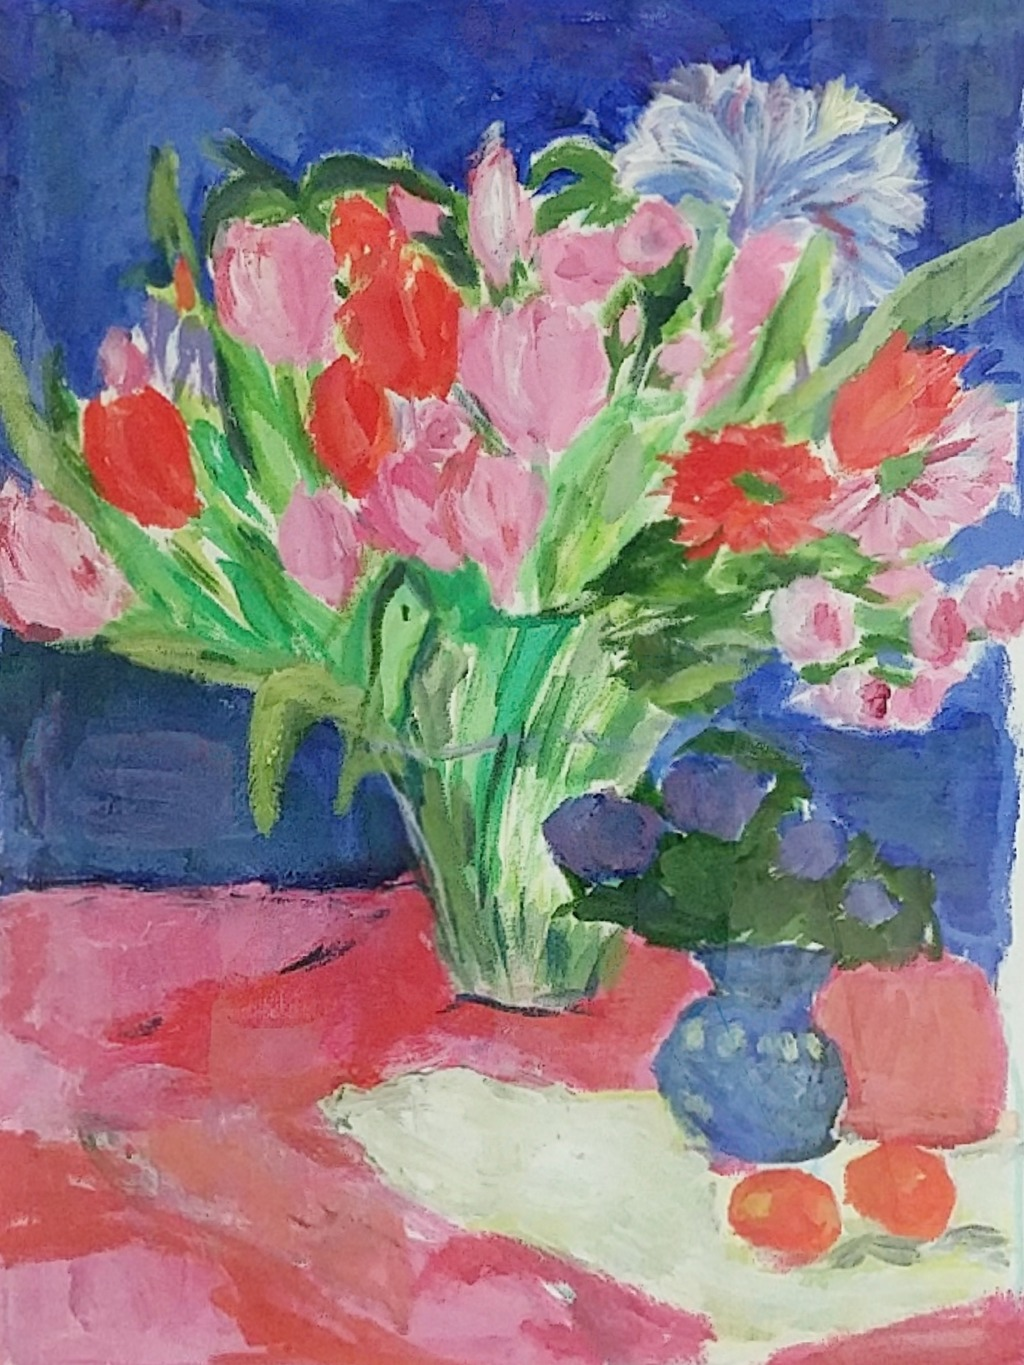 19. Red and blue flowers